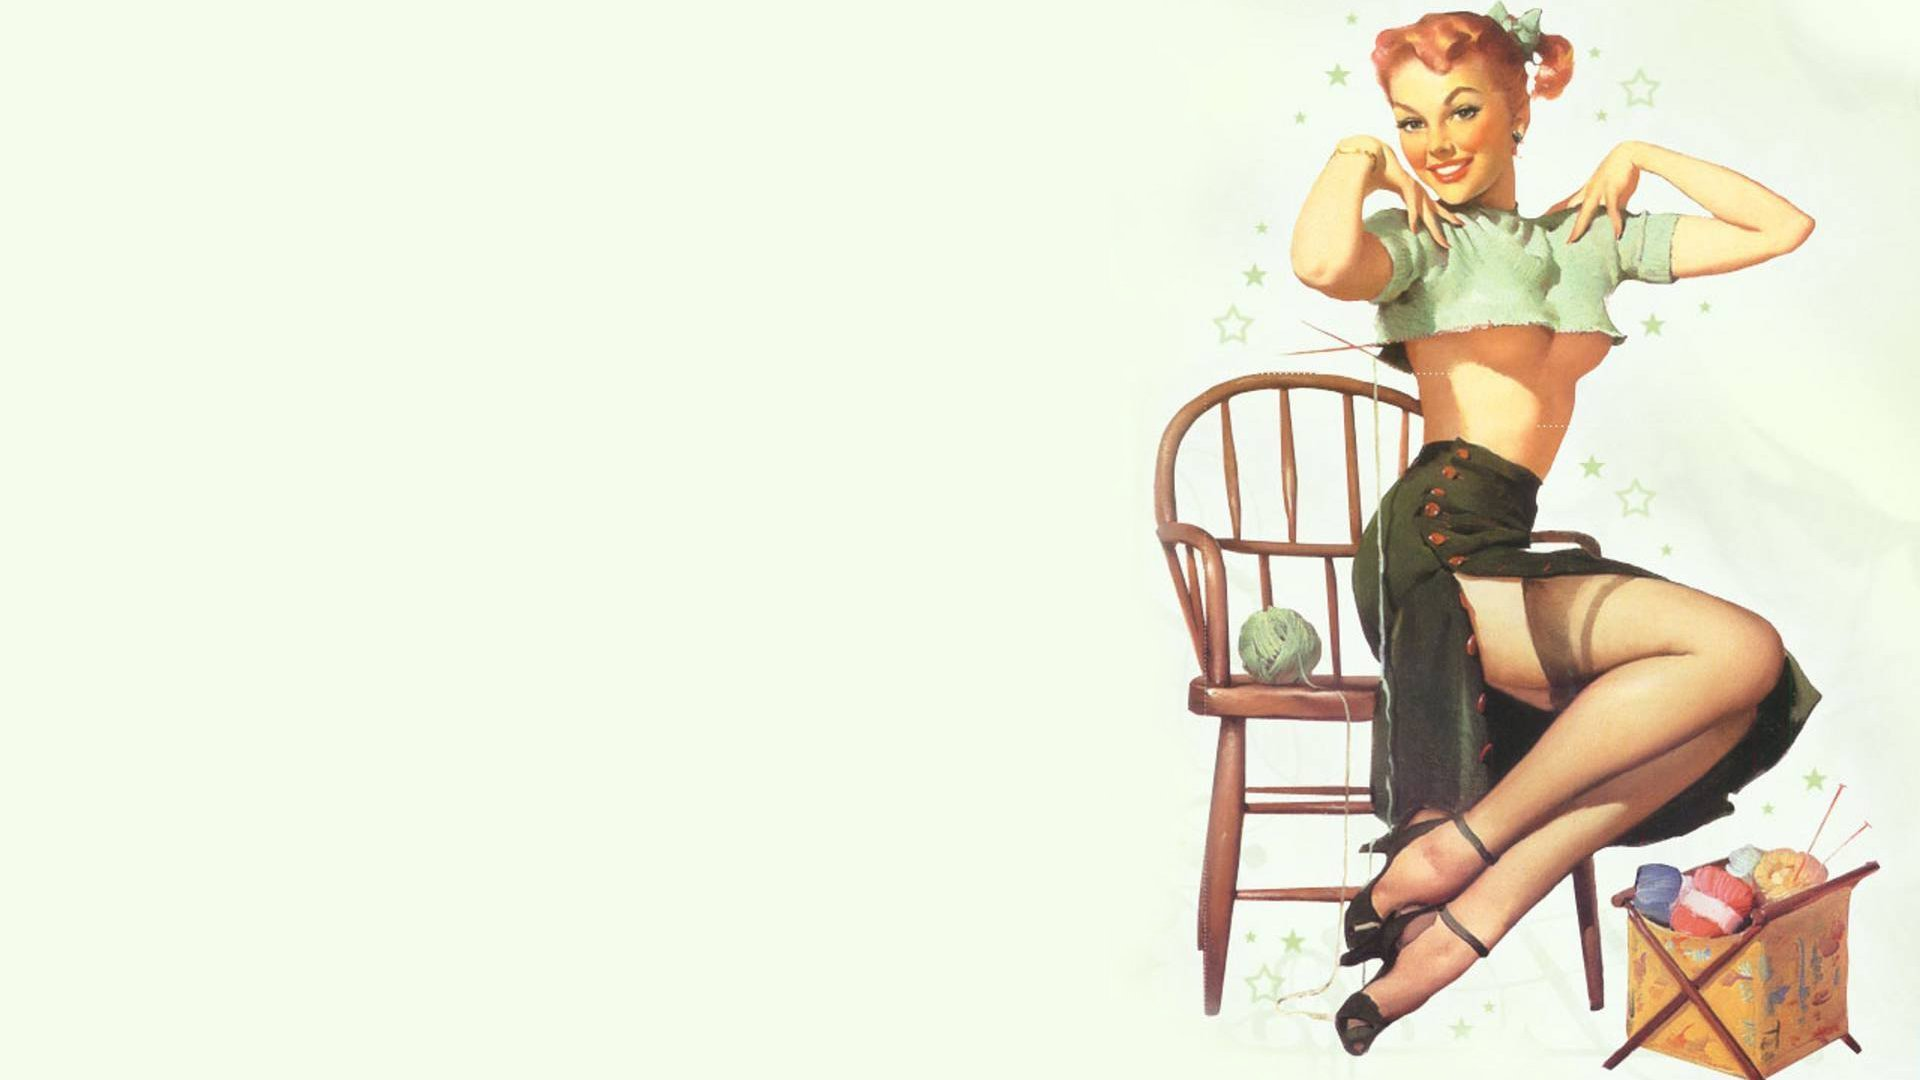 50 Pin Up Girls Hd Wallpaper On Wallpapersafari